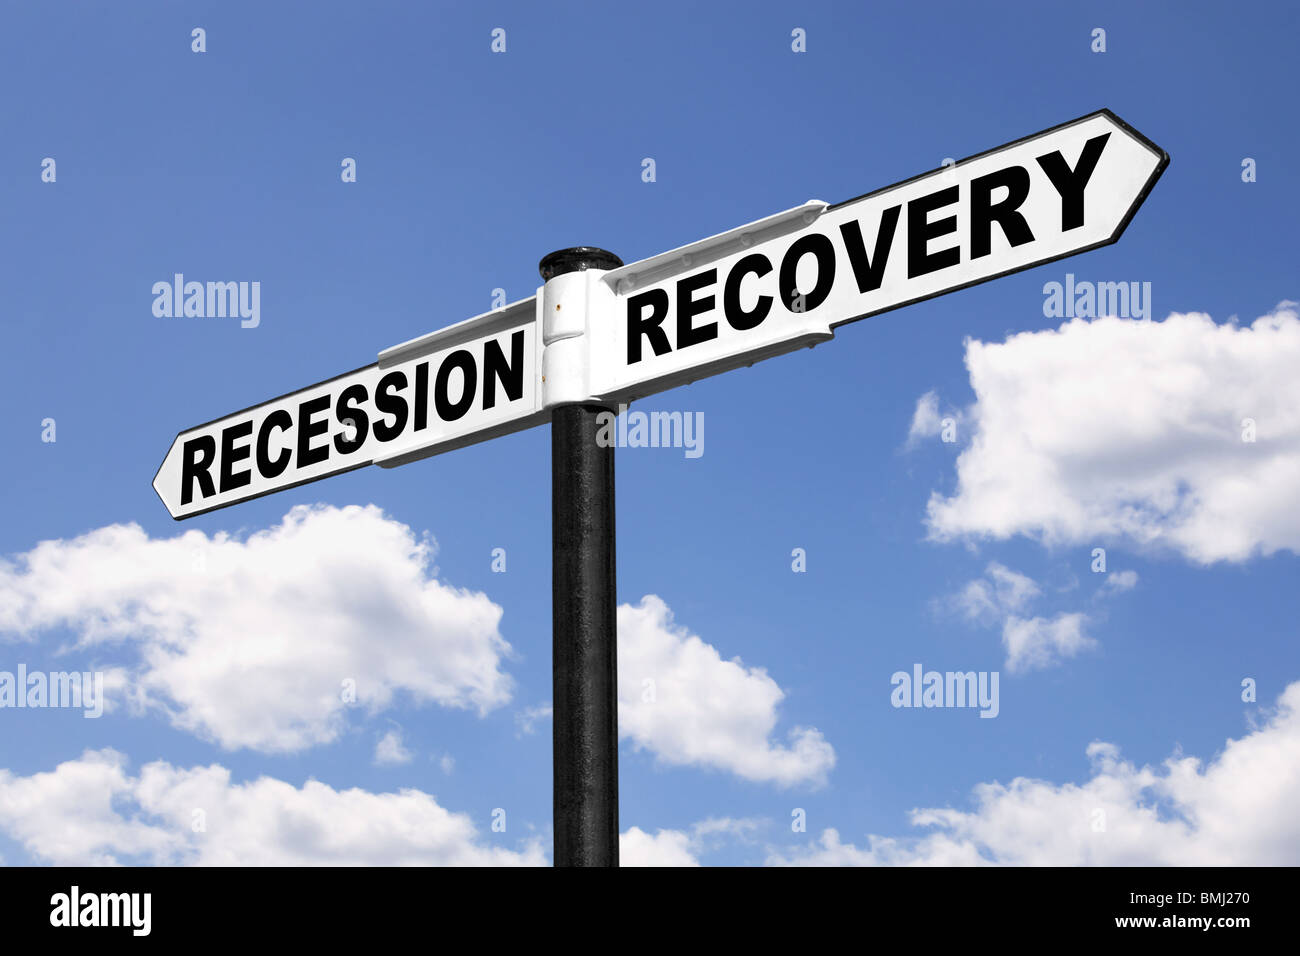 Signpost with the words Recession and Recovery against a blue cloudy sky - Stock Image